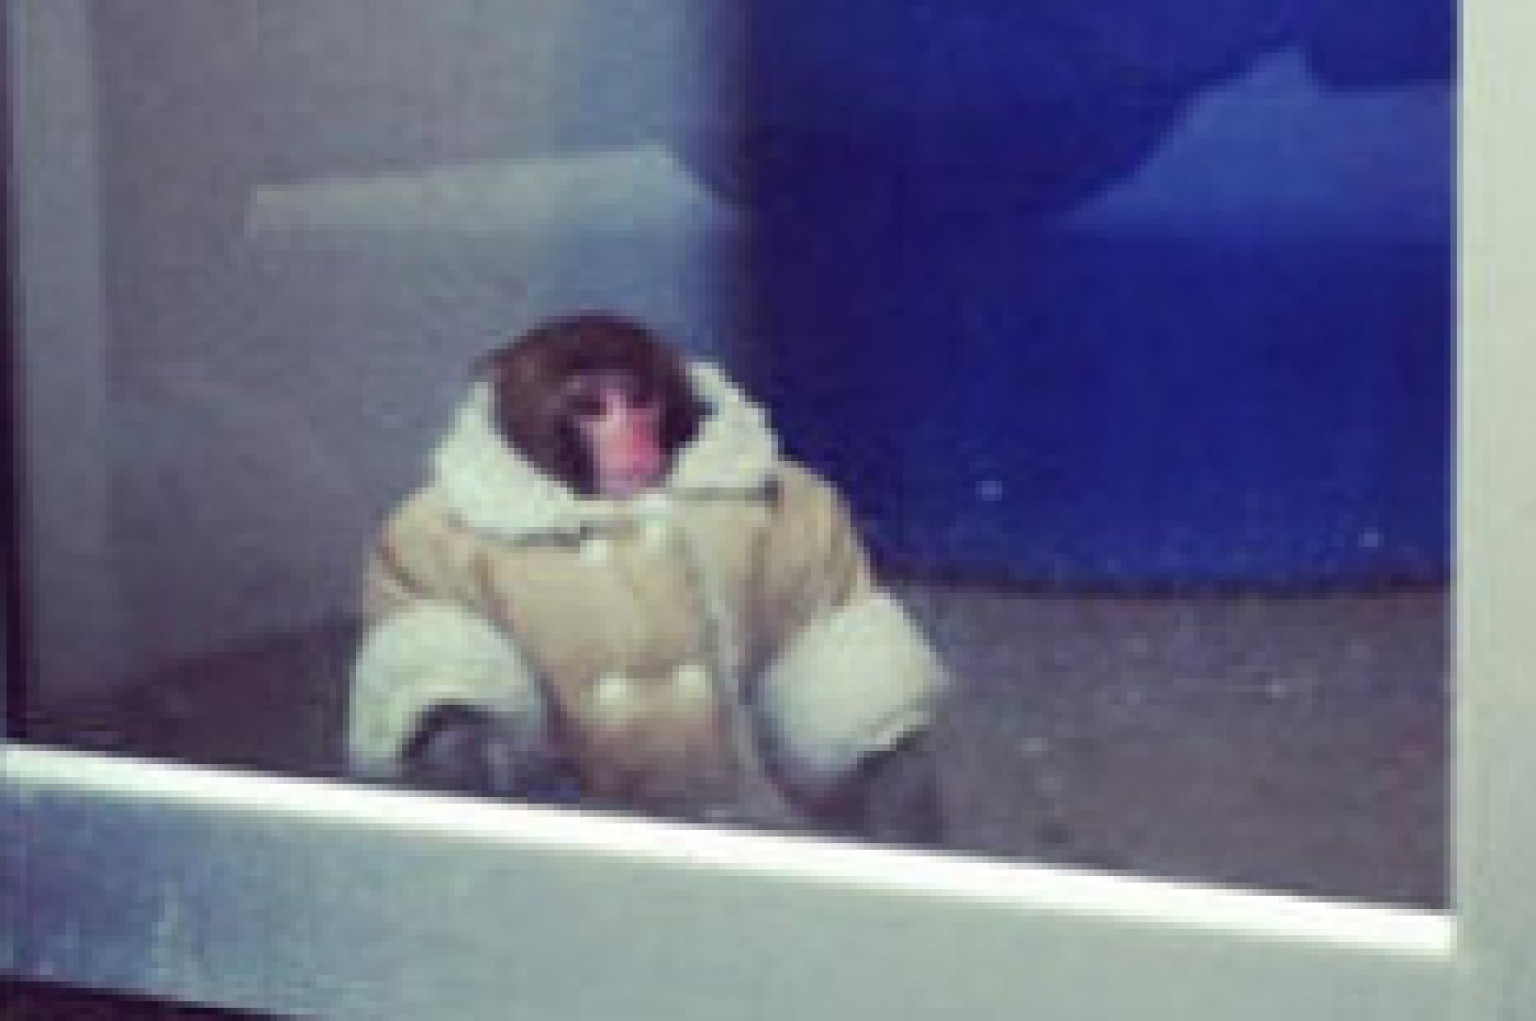 ikea monkeys former owner buys 2 new primates supporters say